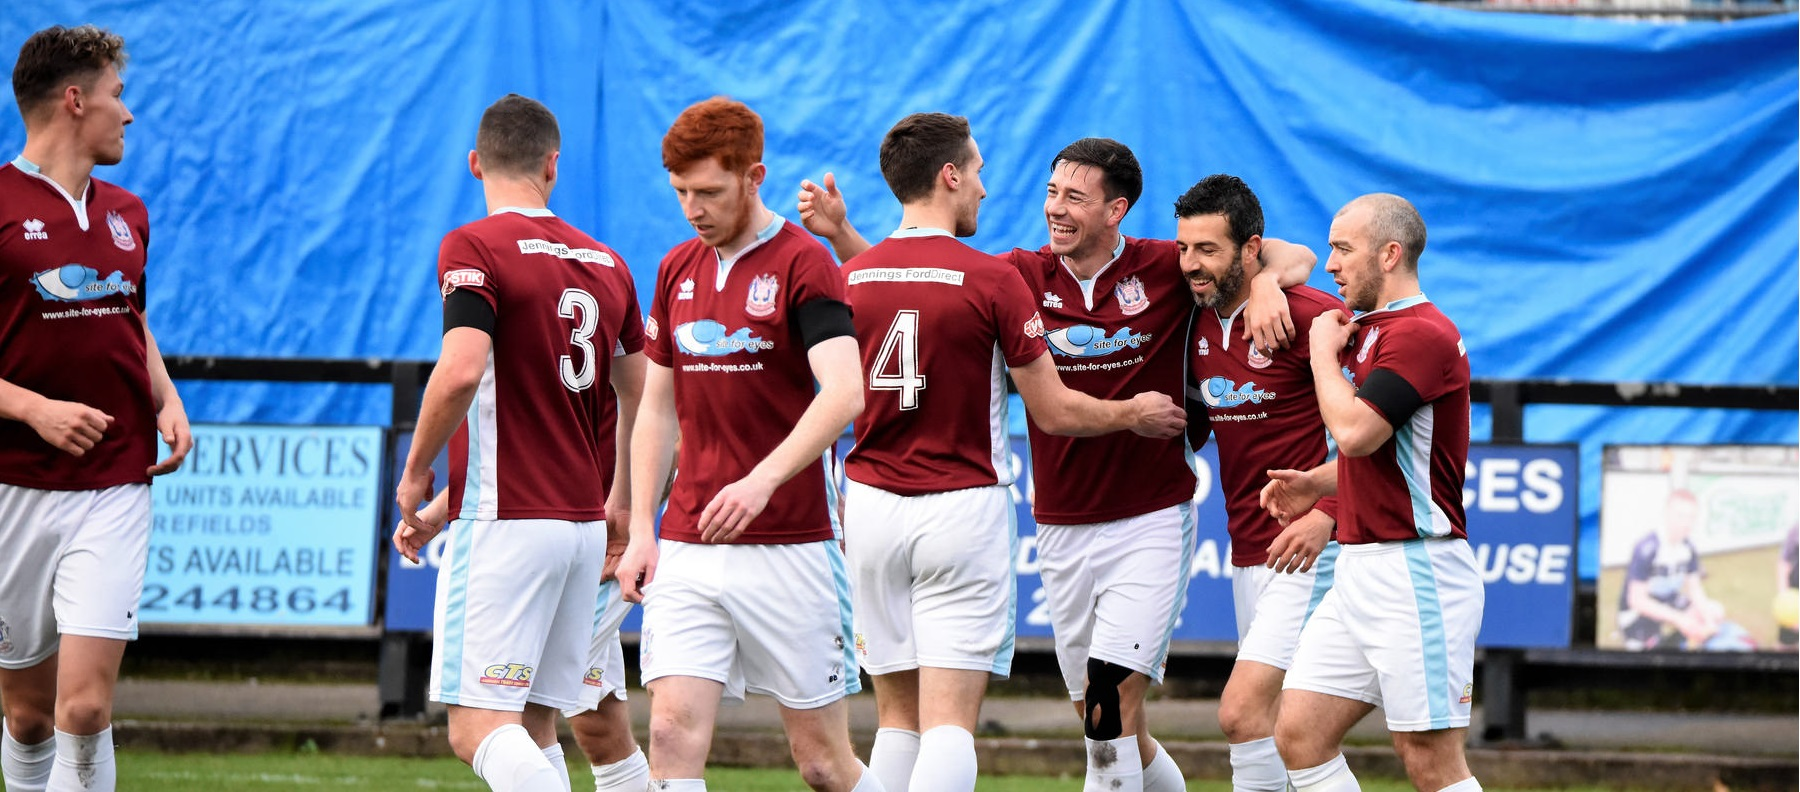 Match Preview: Hartlepool United vs South Shields, Durham Challenge Cup